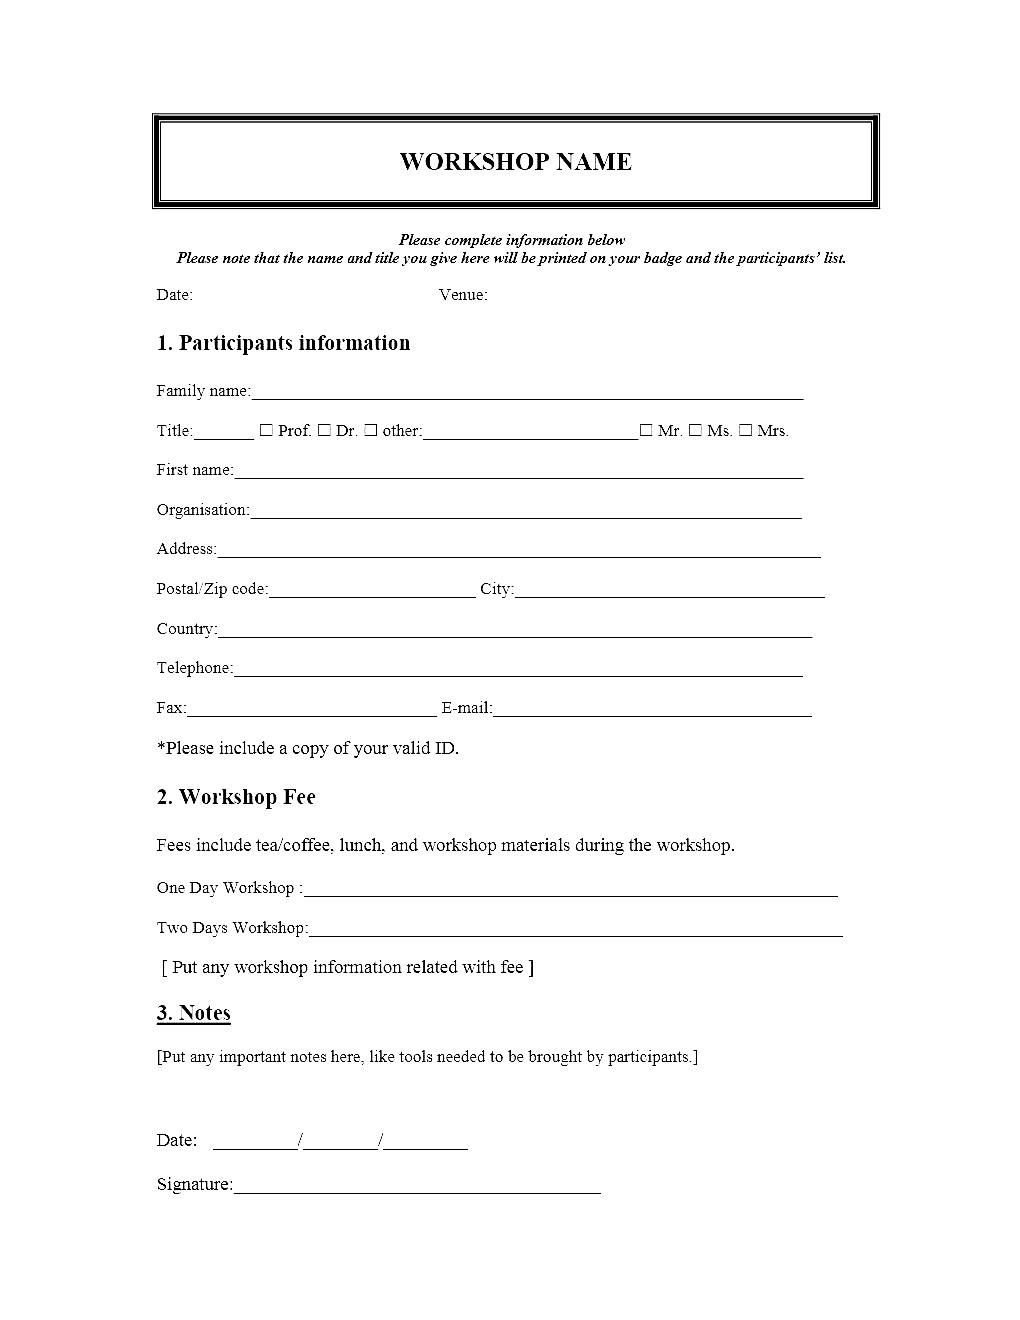 Free Registration forms Template event Registration form Template Microsoft Word